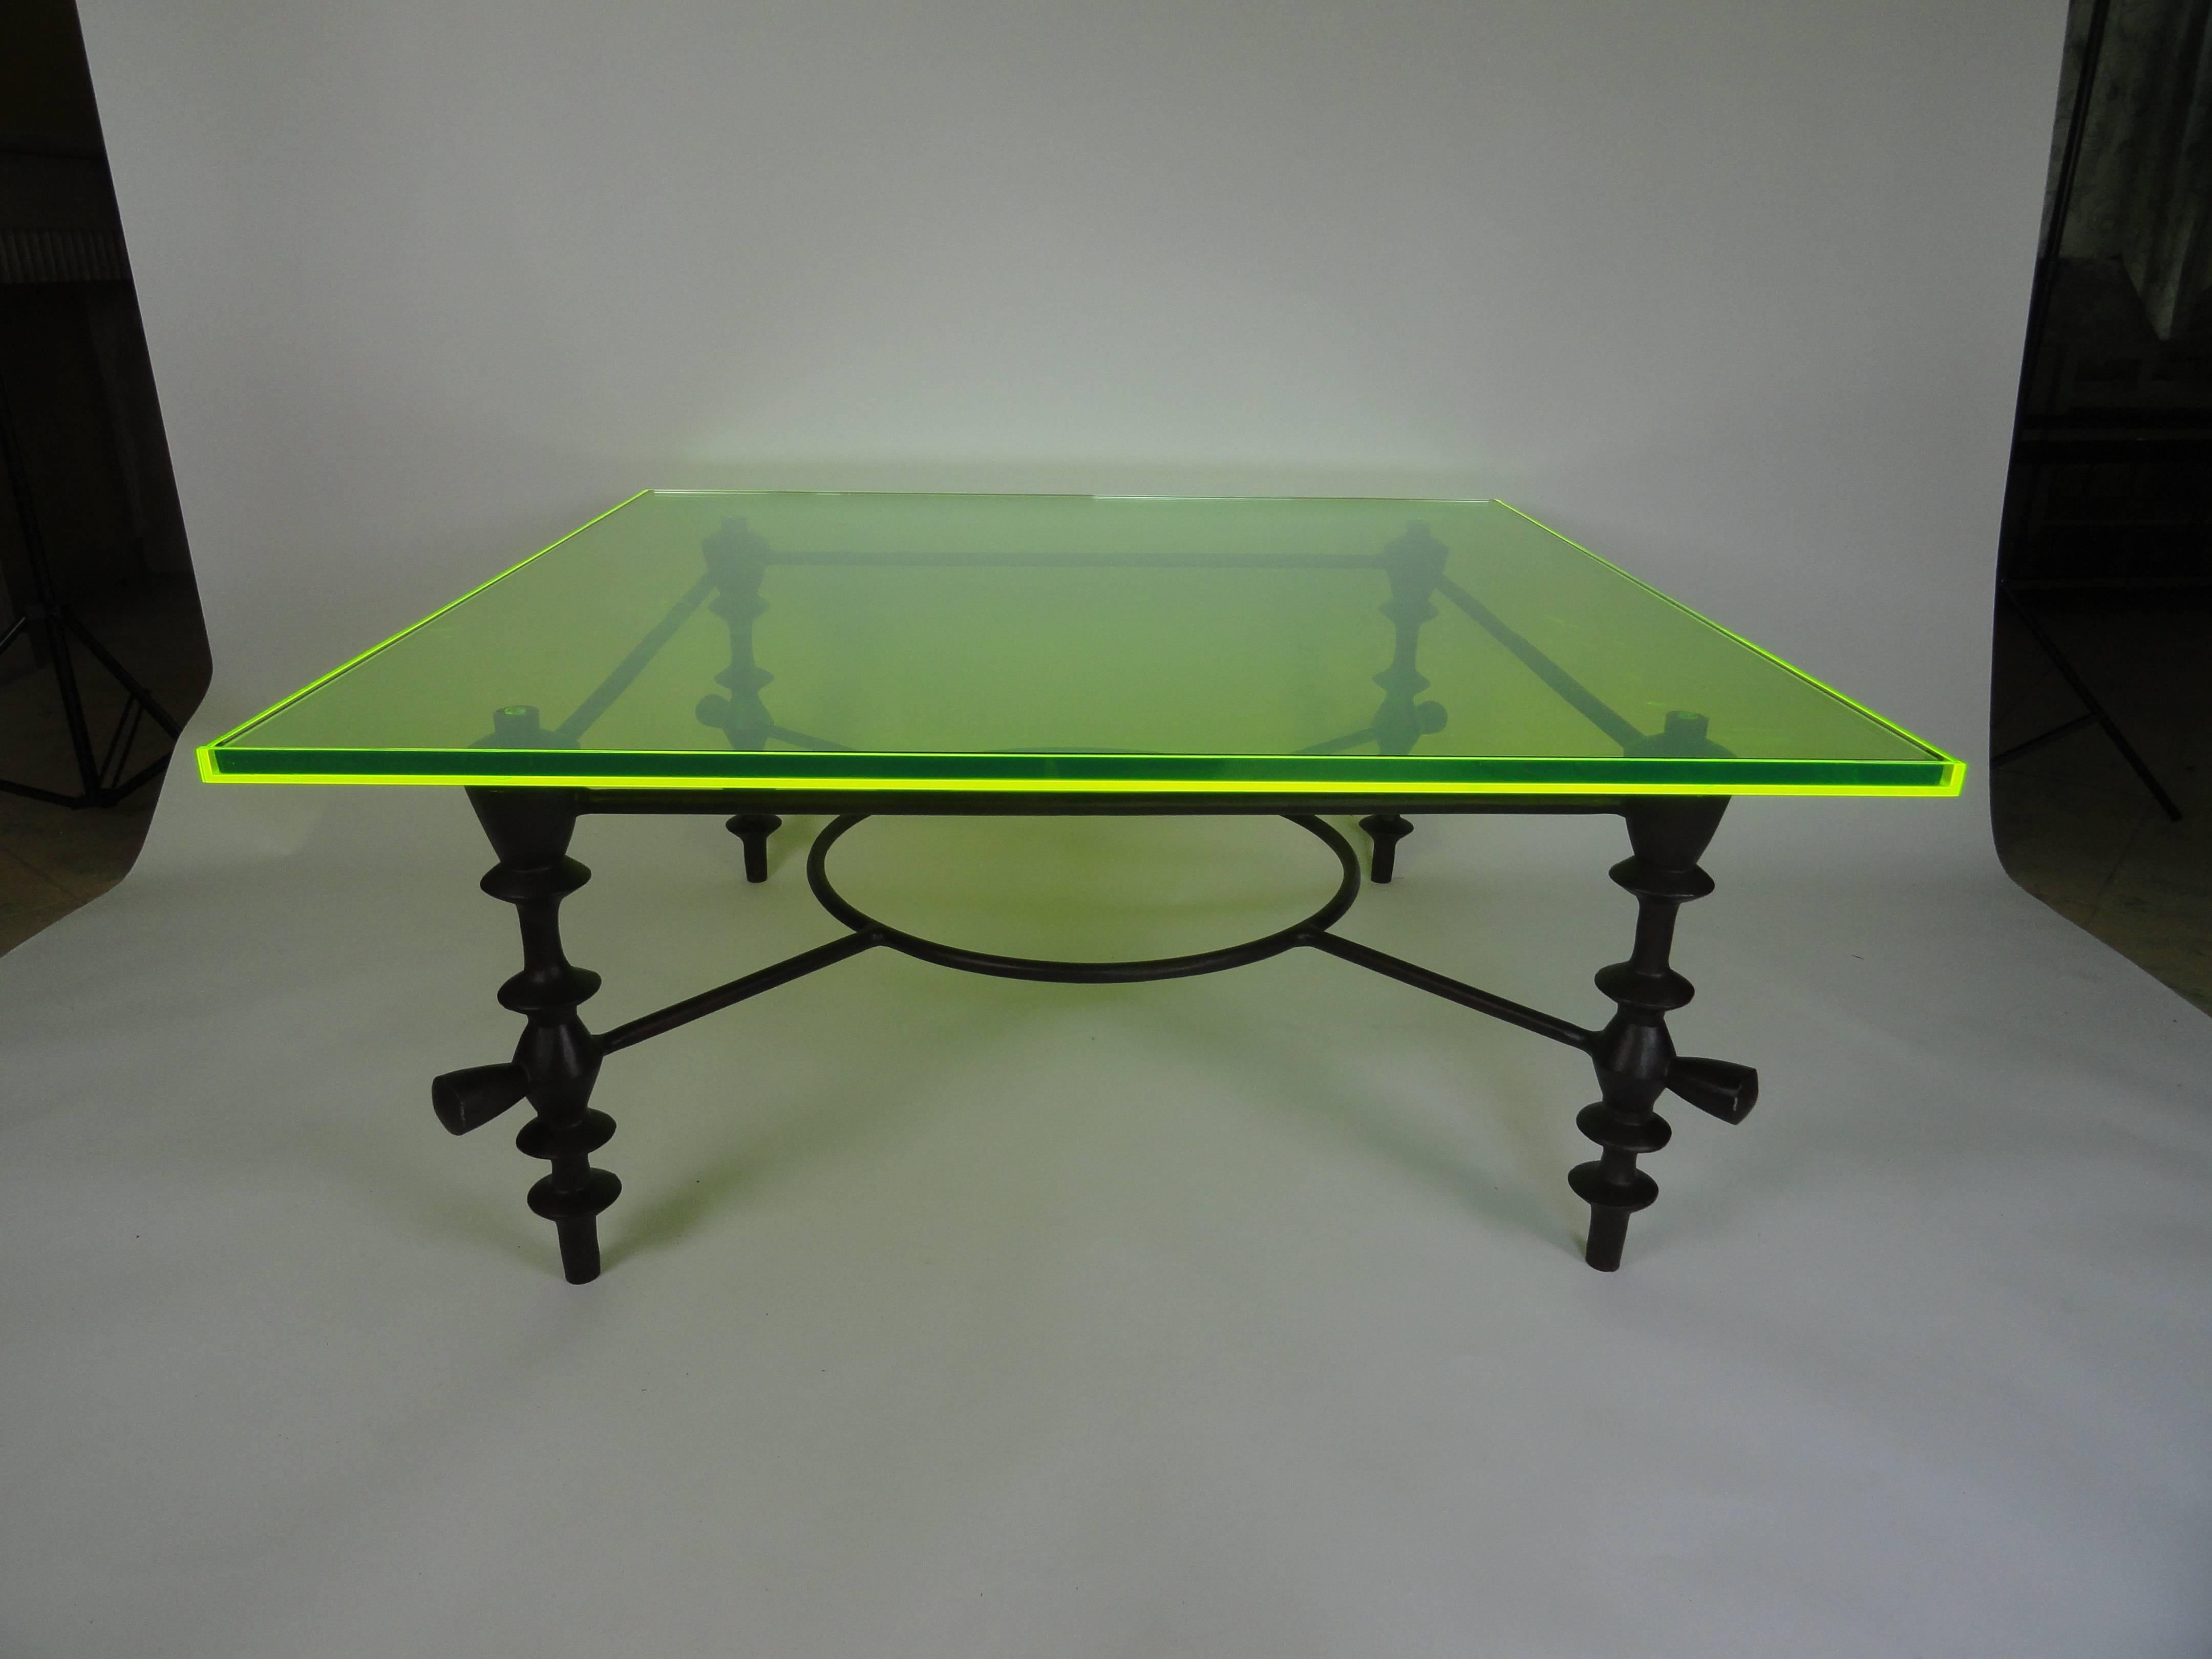 Giacometti Style Coffee Table Made Of Metal With A Custom Green Acrylic Top.  The Edges